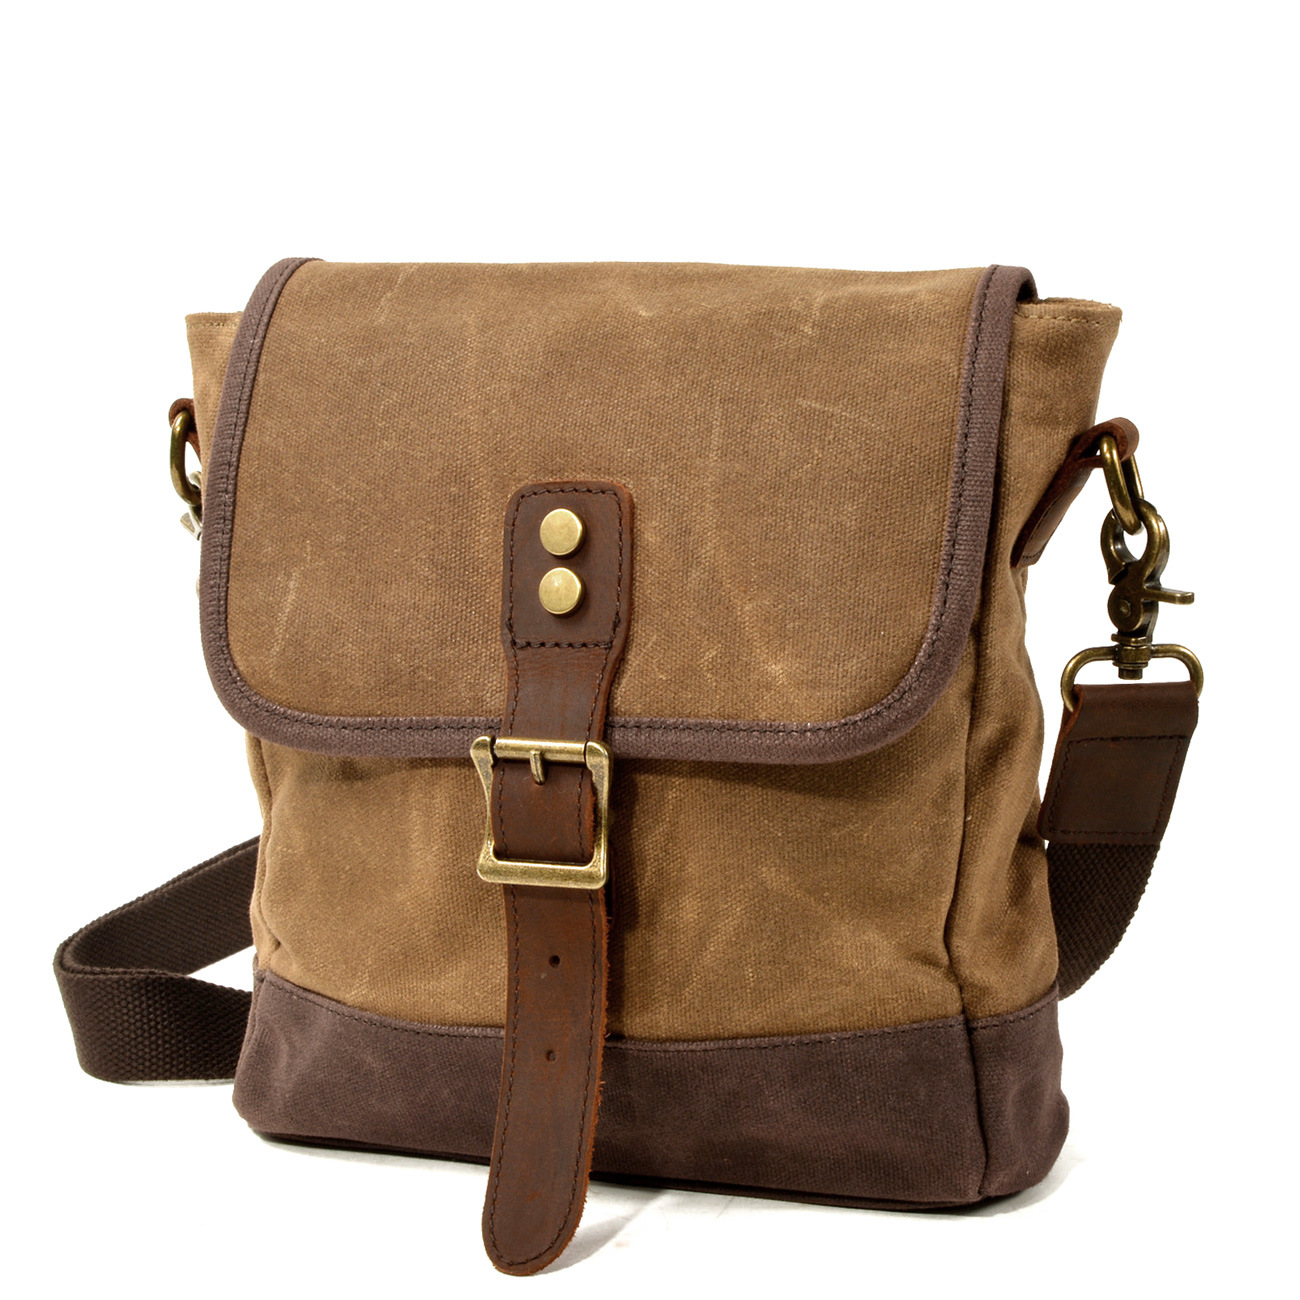 2020 New Retro Oil Wax Canvas with Genuine Leather Messenger Bag Shoulder Bag for Men Crossbody Bags Business Briefcase